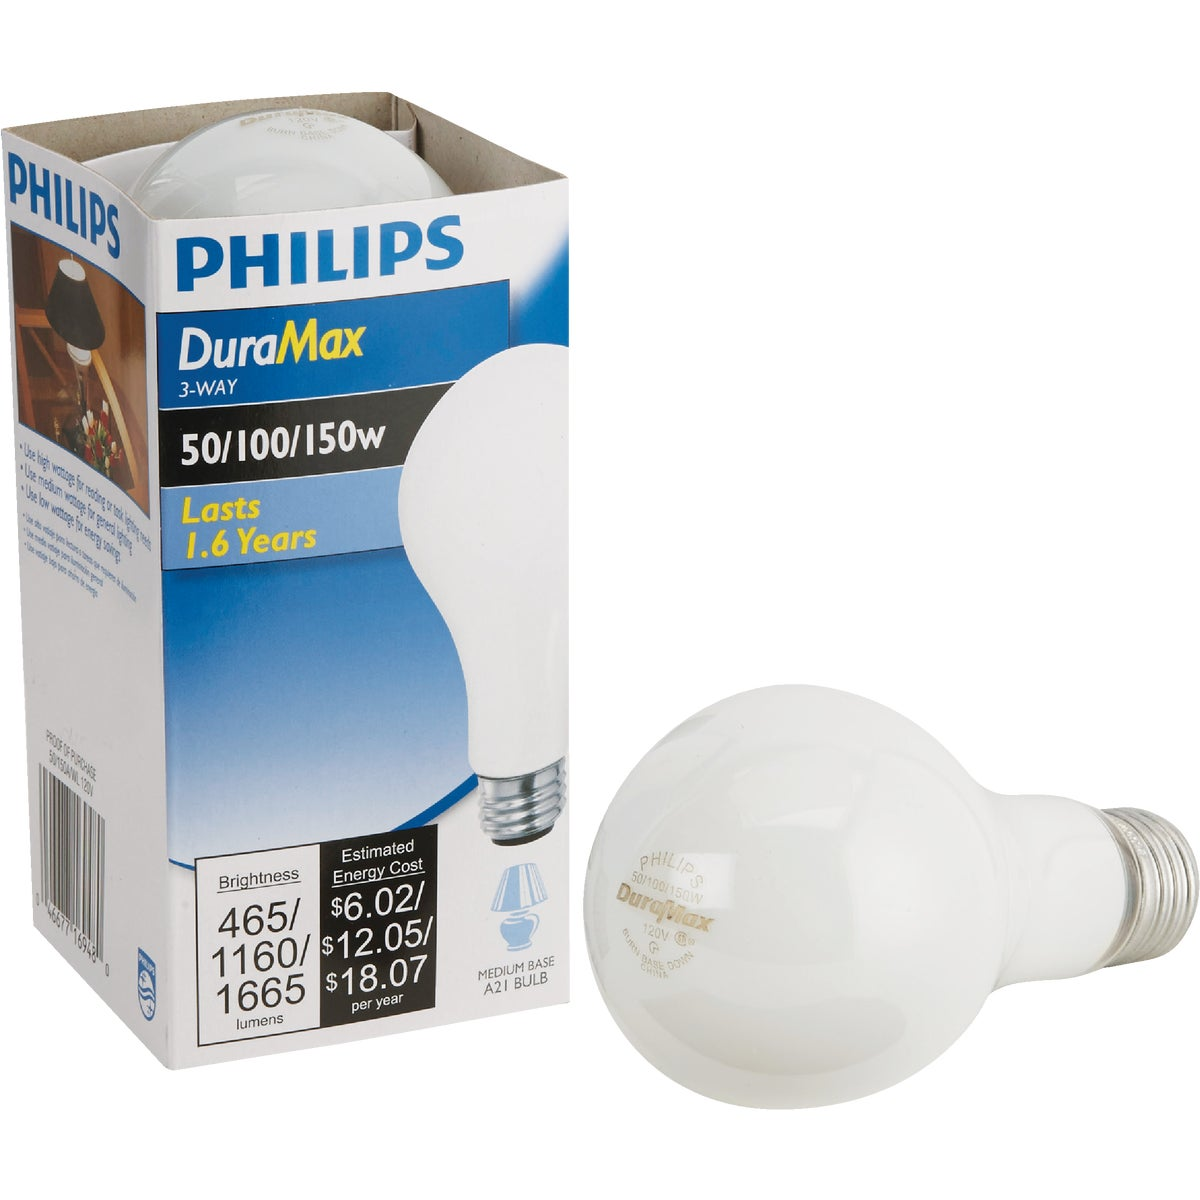 50/150W SW 3-WAY BULB - 97494 by G E Lighting